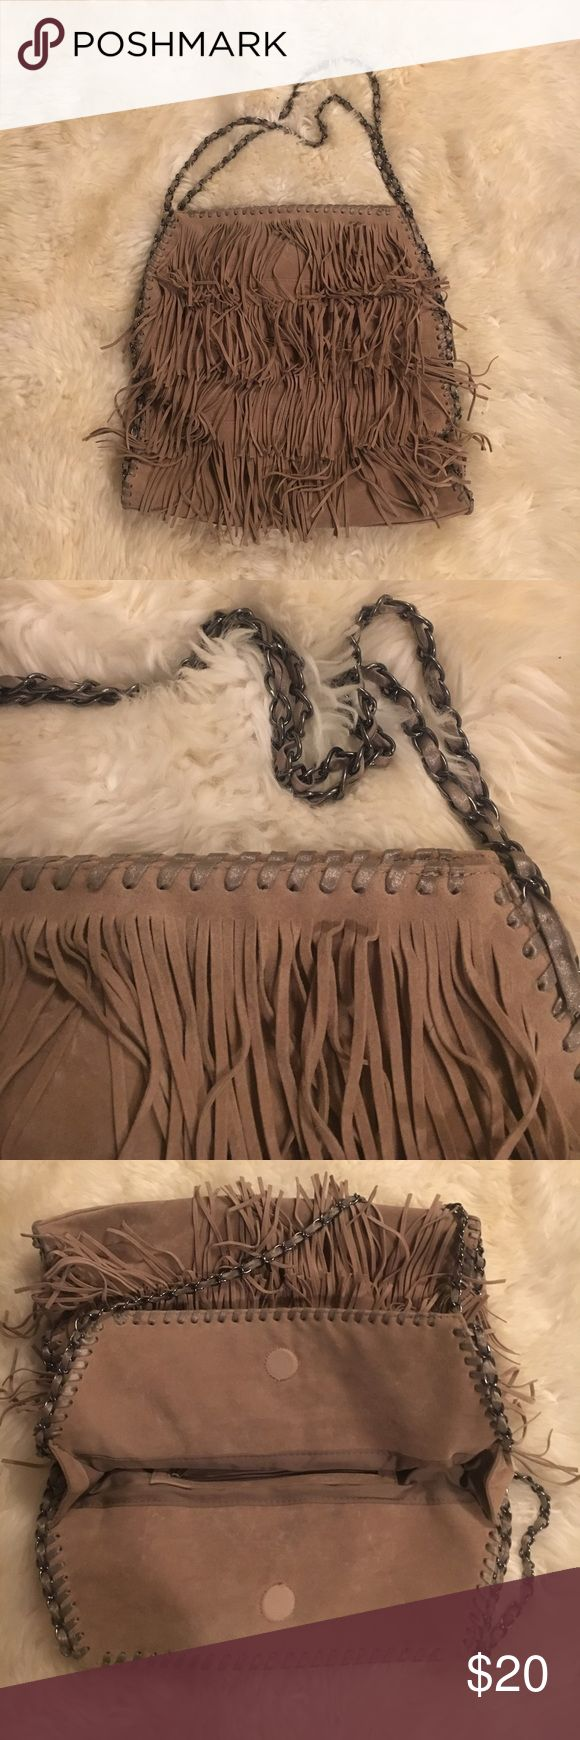 Stella McCartney style Boston Proper fringe bag Boston Proper fringe bag. The same style as Stella McCartney fringe bag. Much lower weight. Very clean. Huge sale of my closet now. Boston Proper Bags Totes